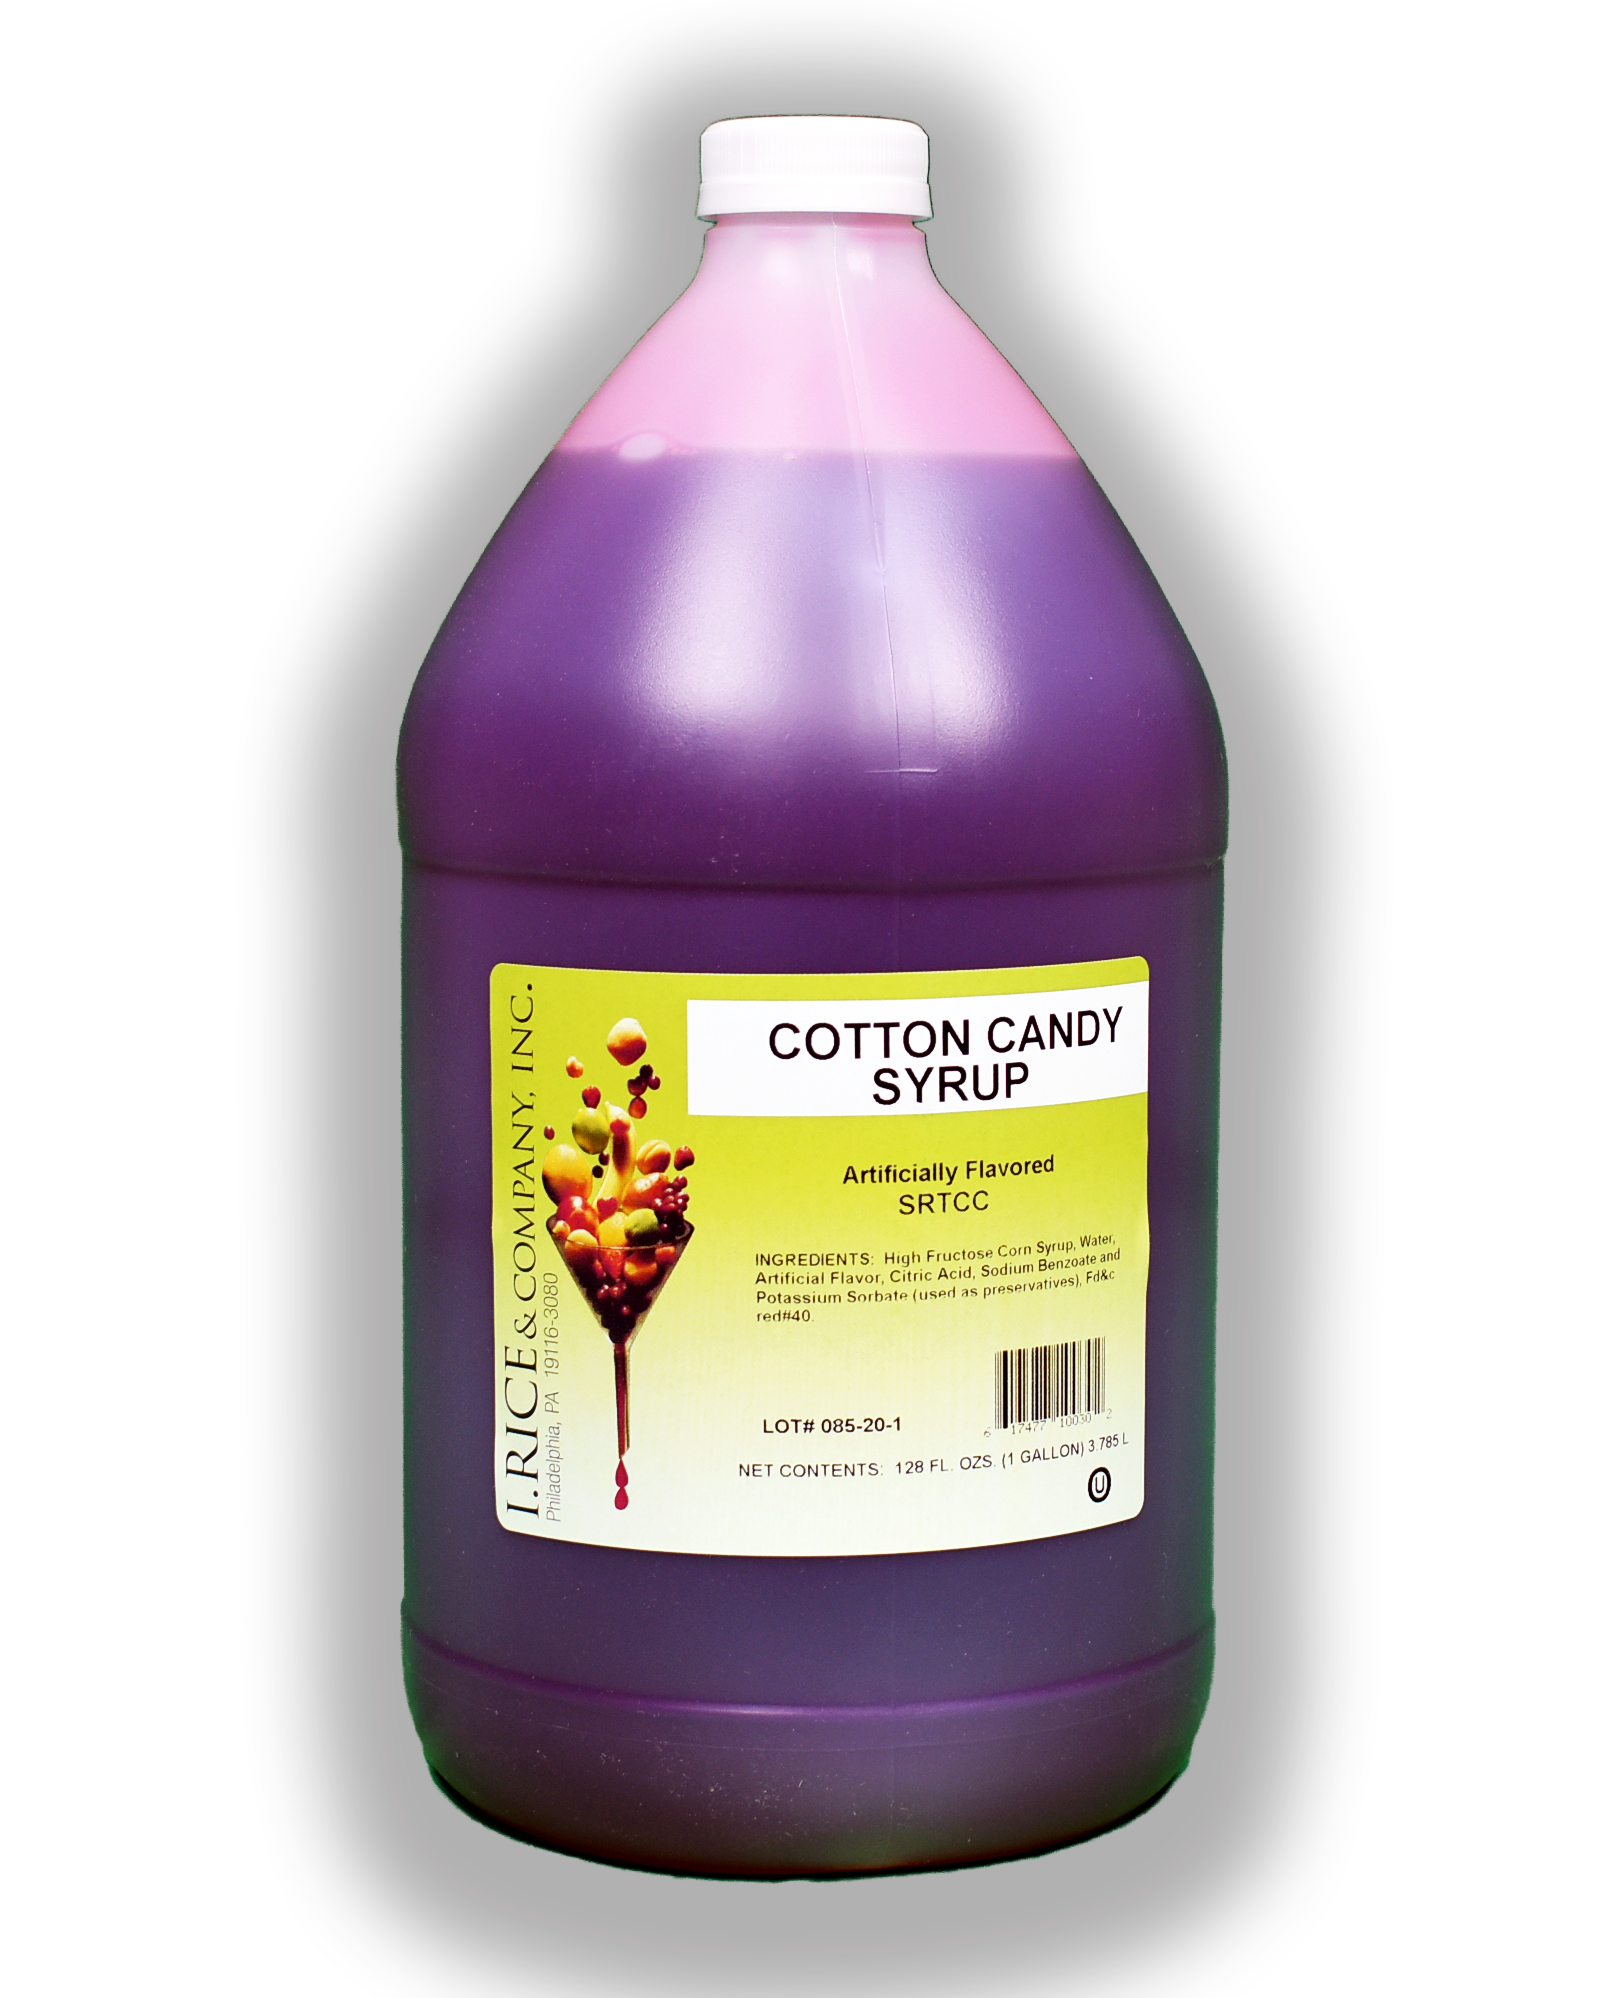 RICE COTTON CANDY SYRUP